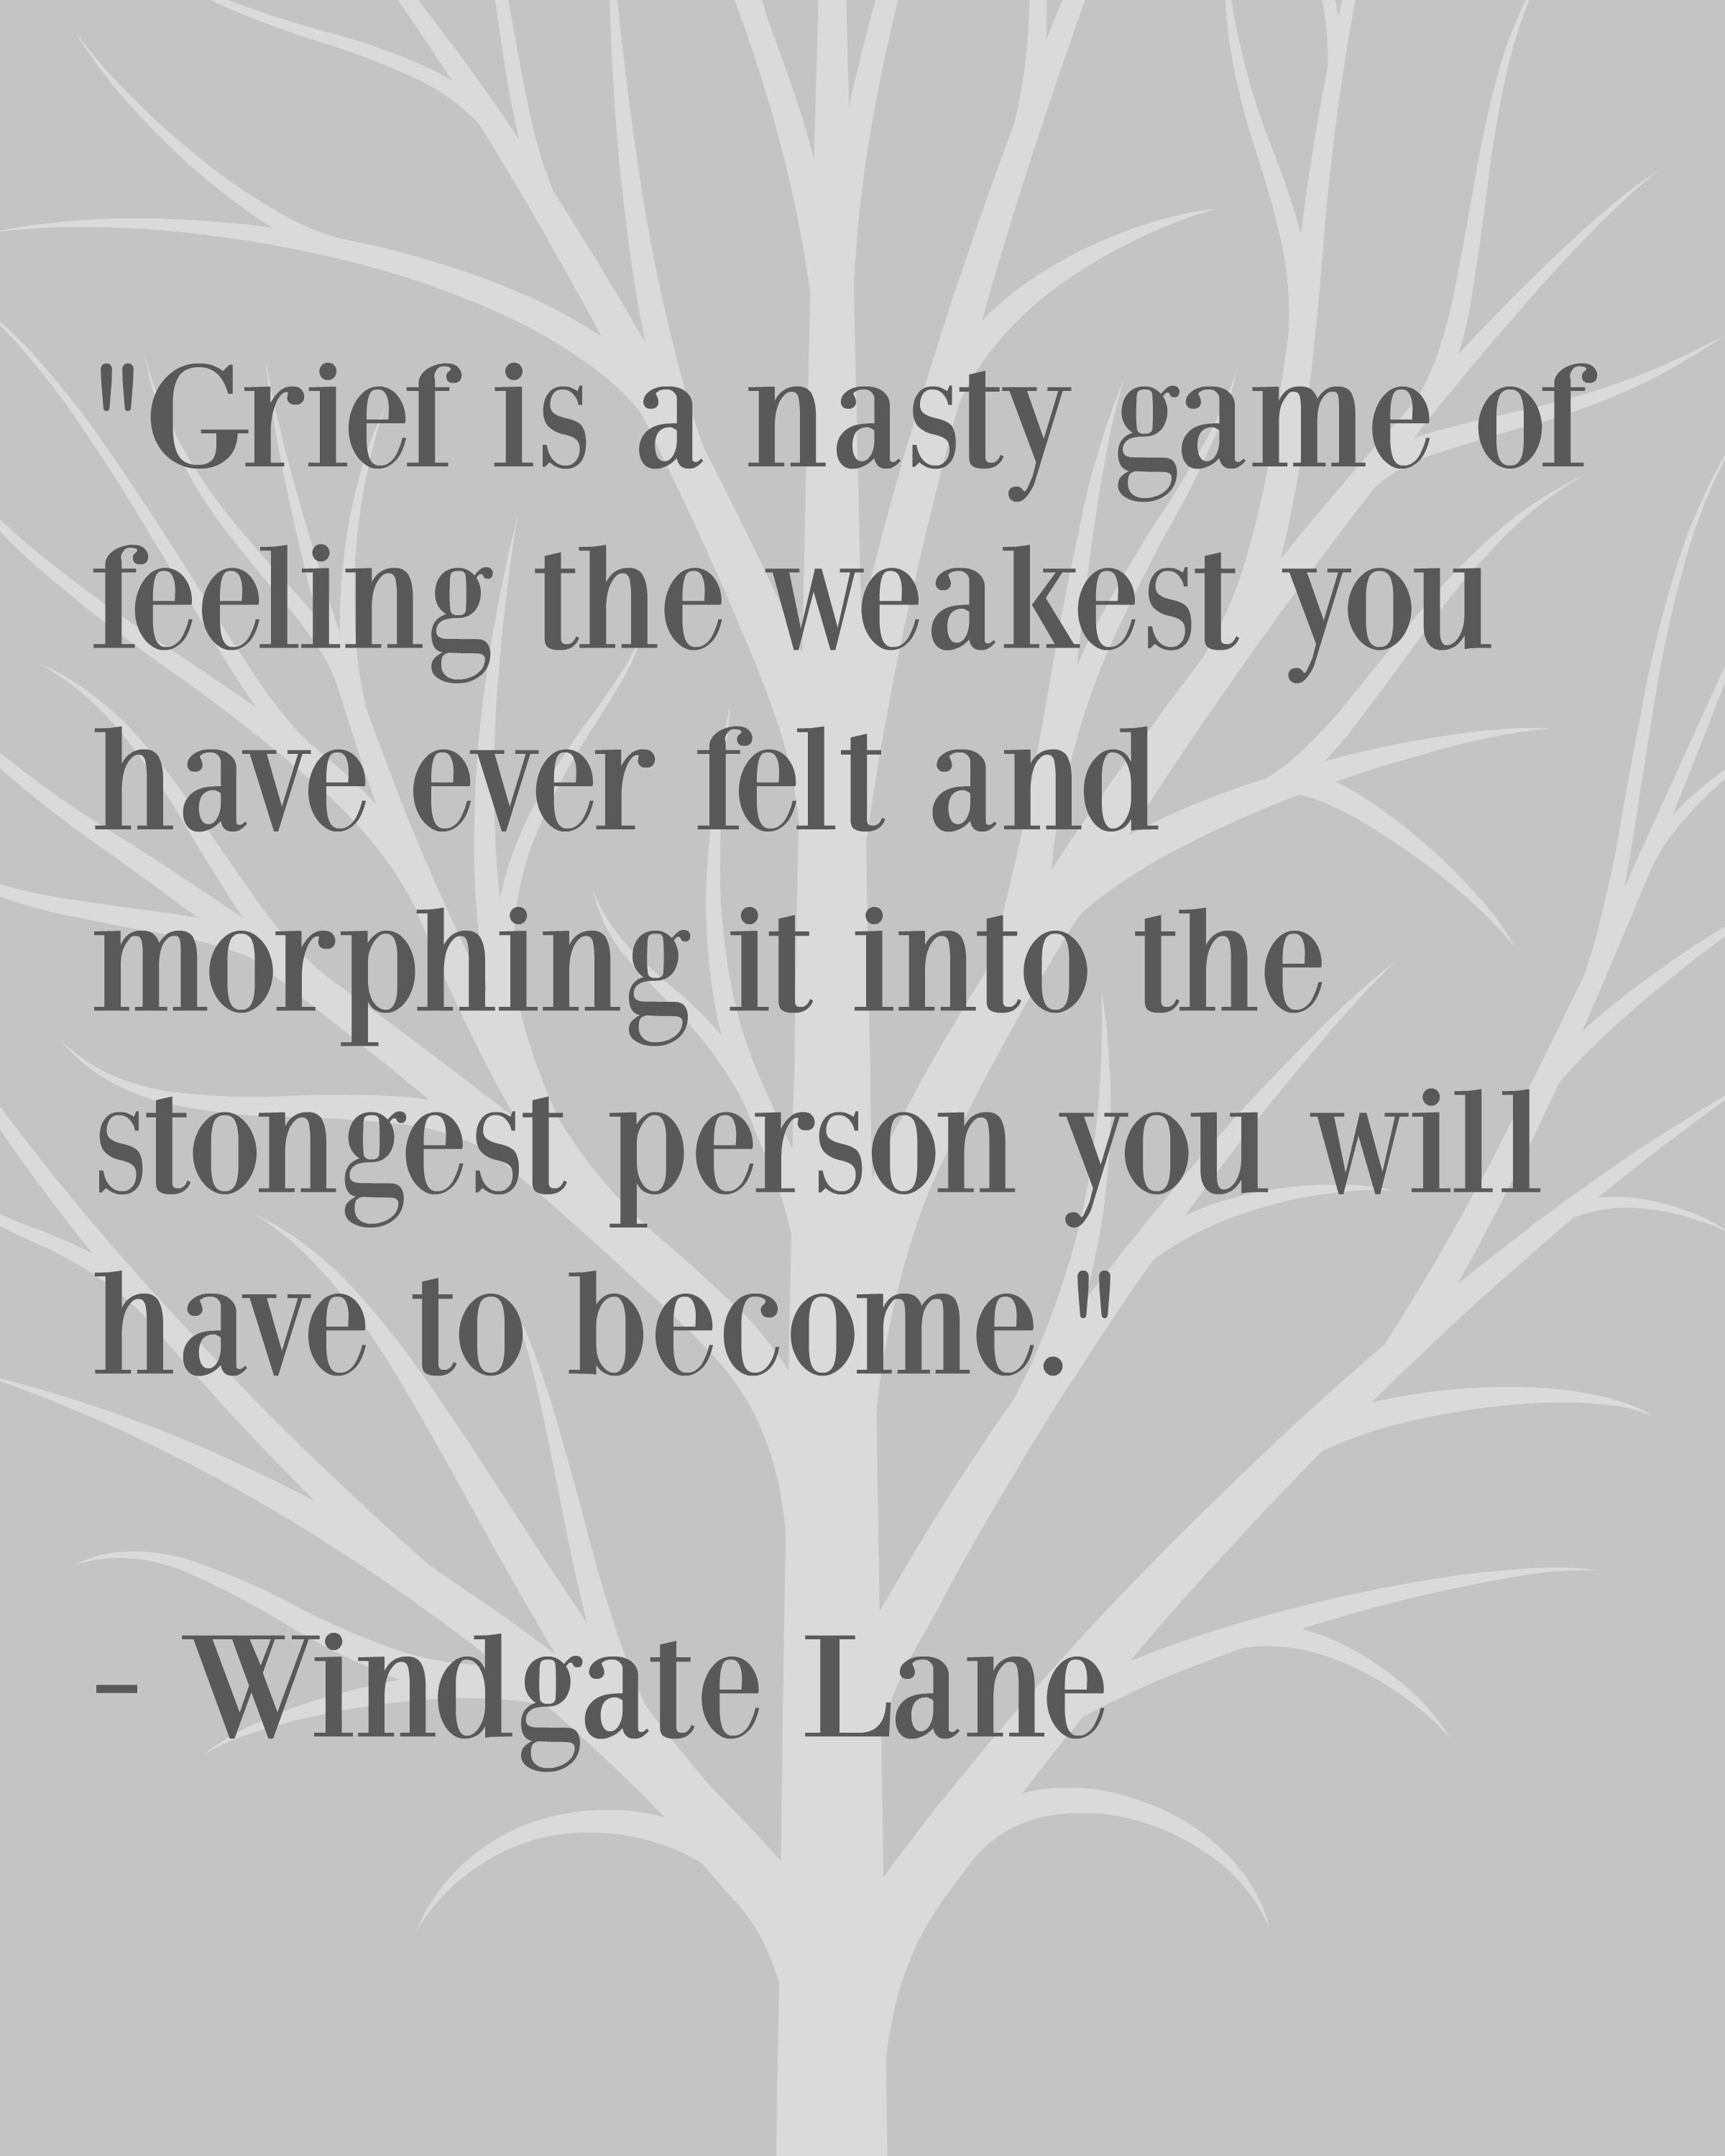 Dreams After Grief Windgate Lane Grief Grief Dad Quotes About Strength